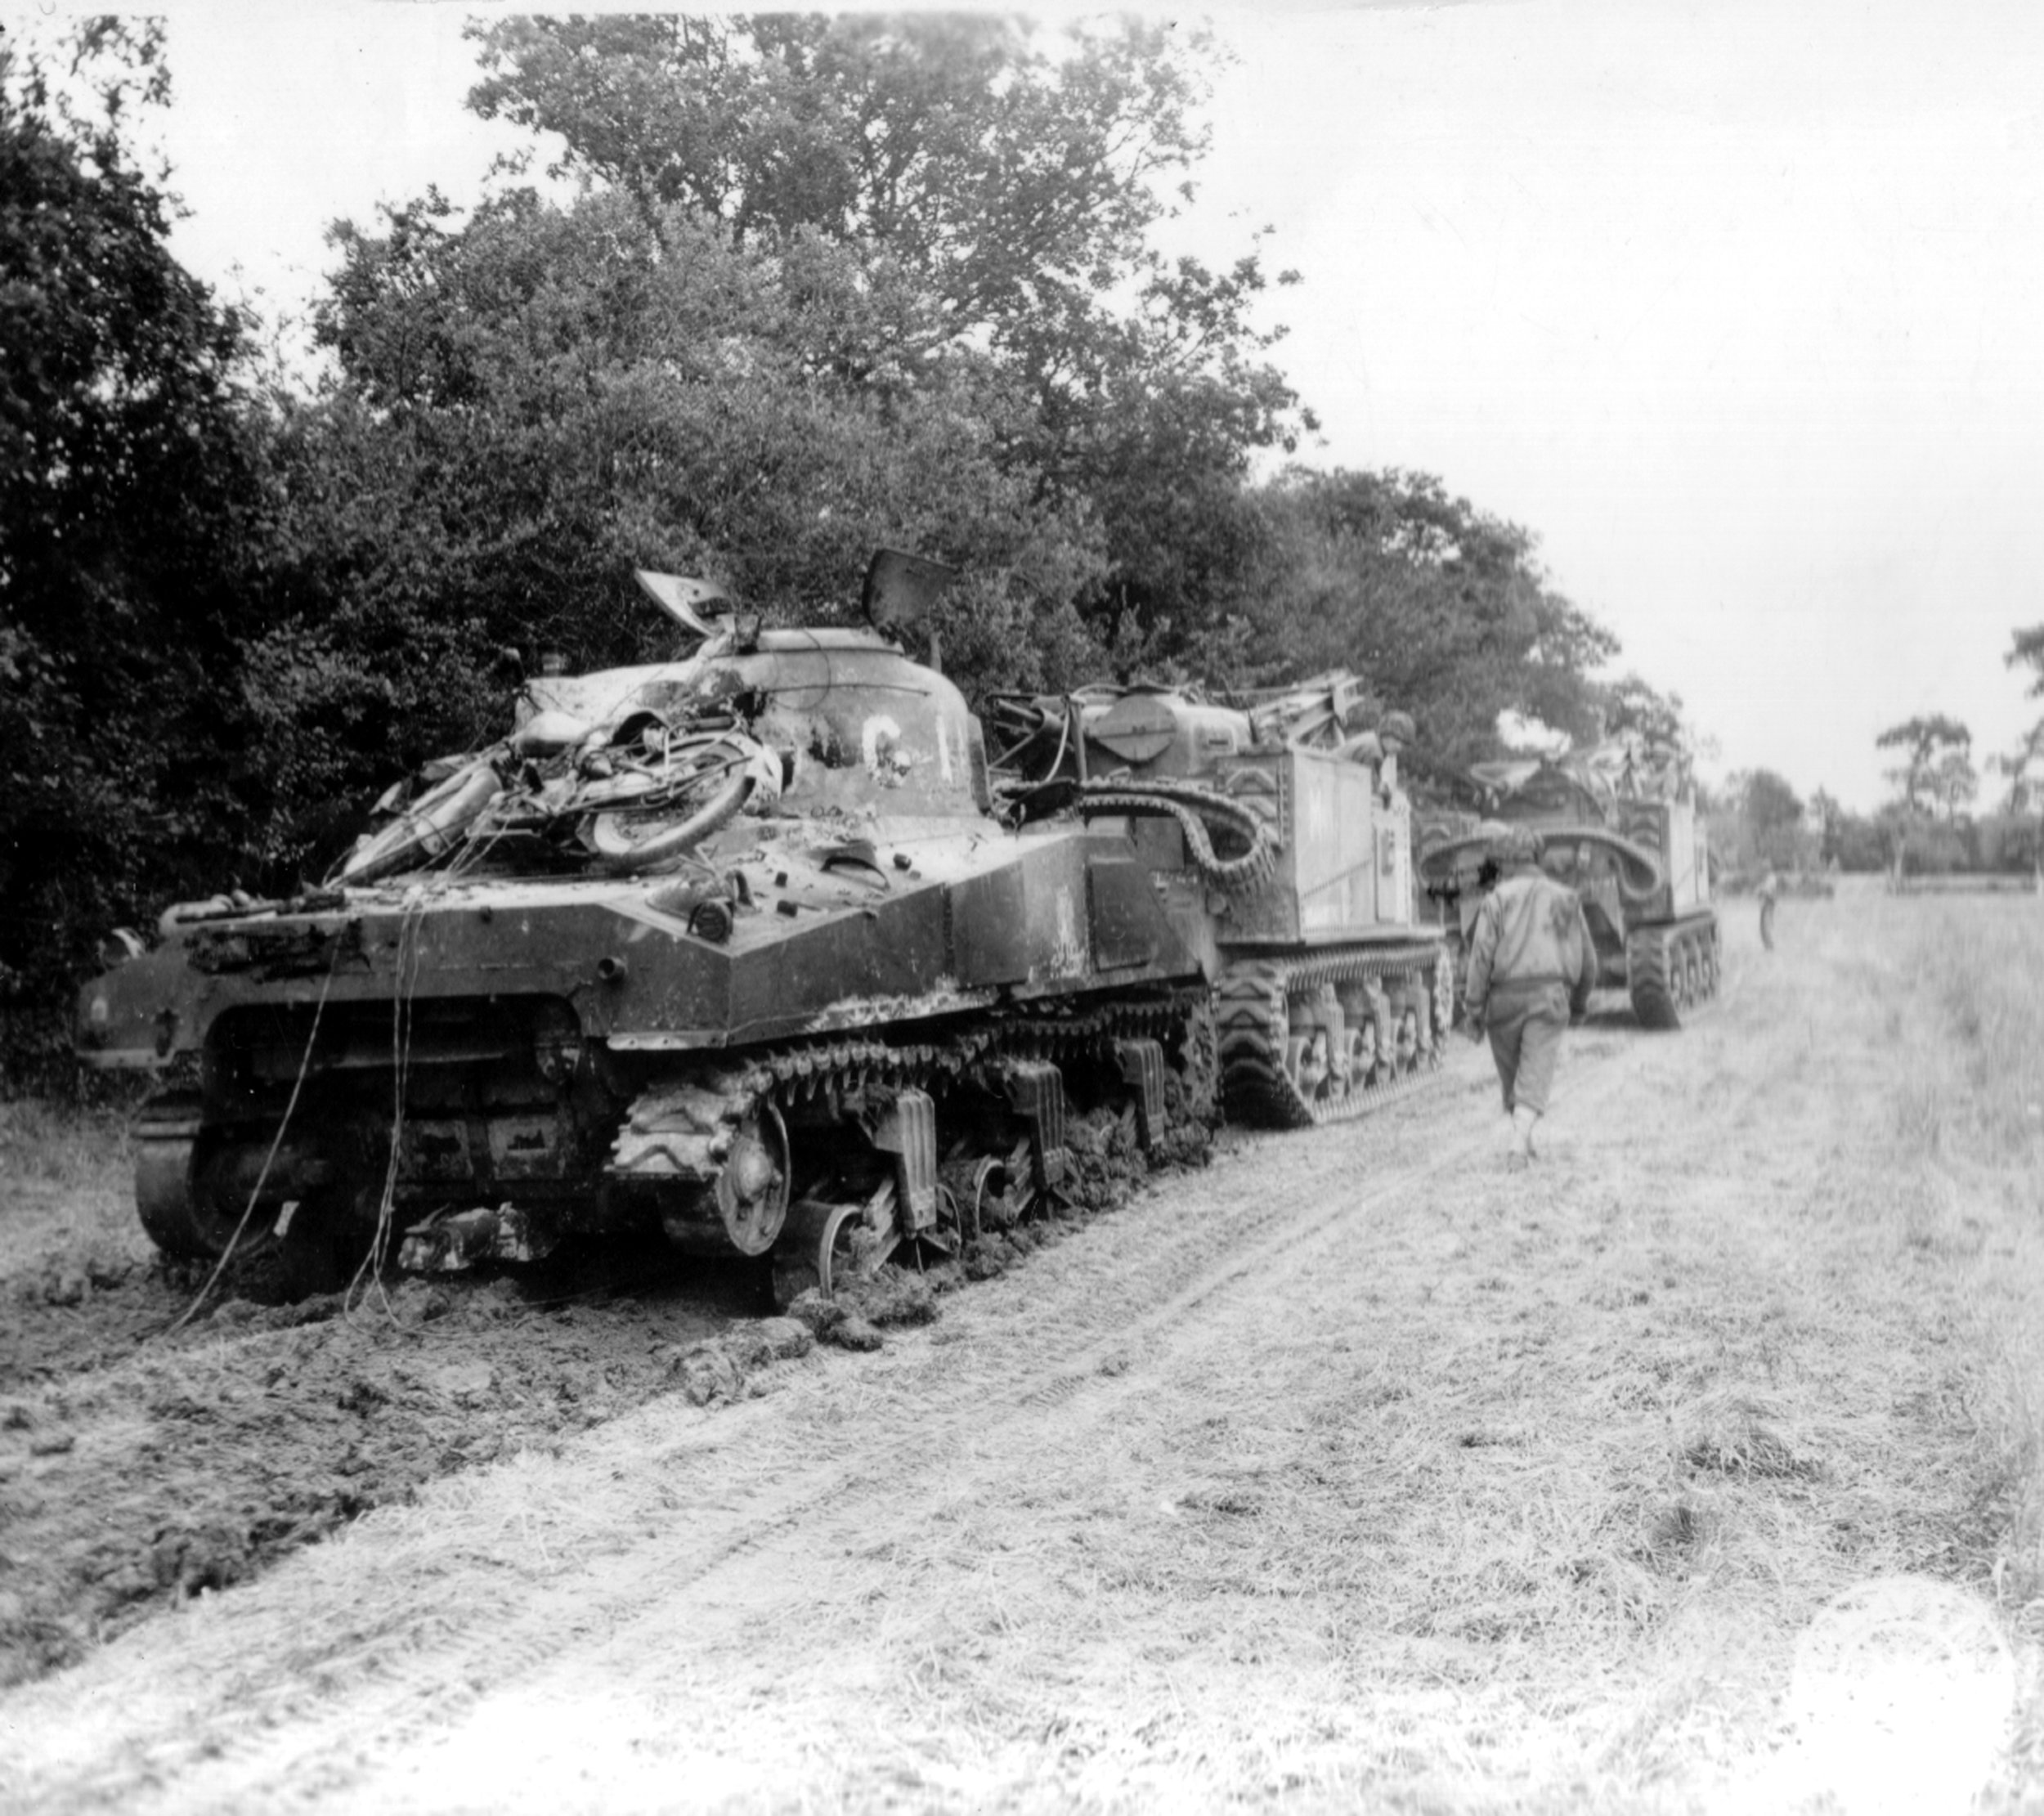 M31 of the 3rd Armored Division recovering a M4.Saint Fromond (Normandy), France.14 Jul 1944.